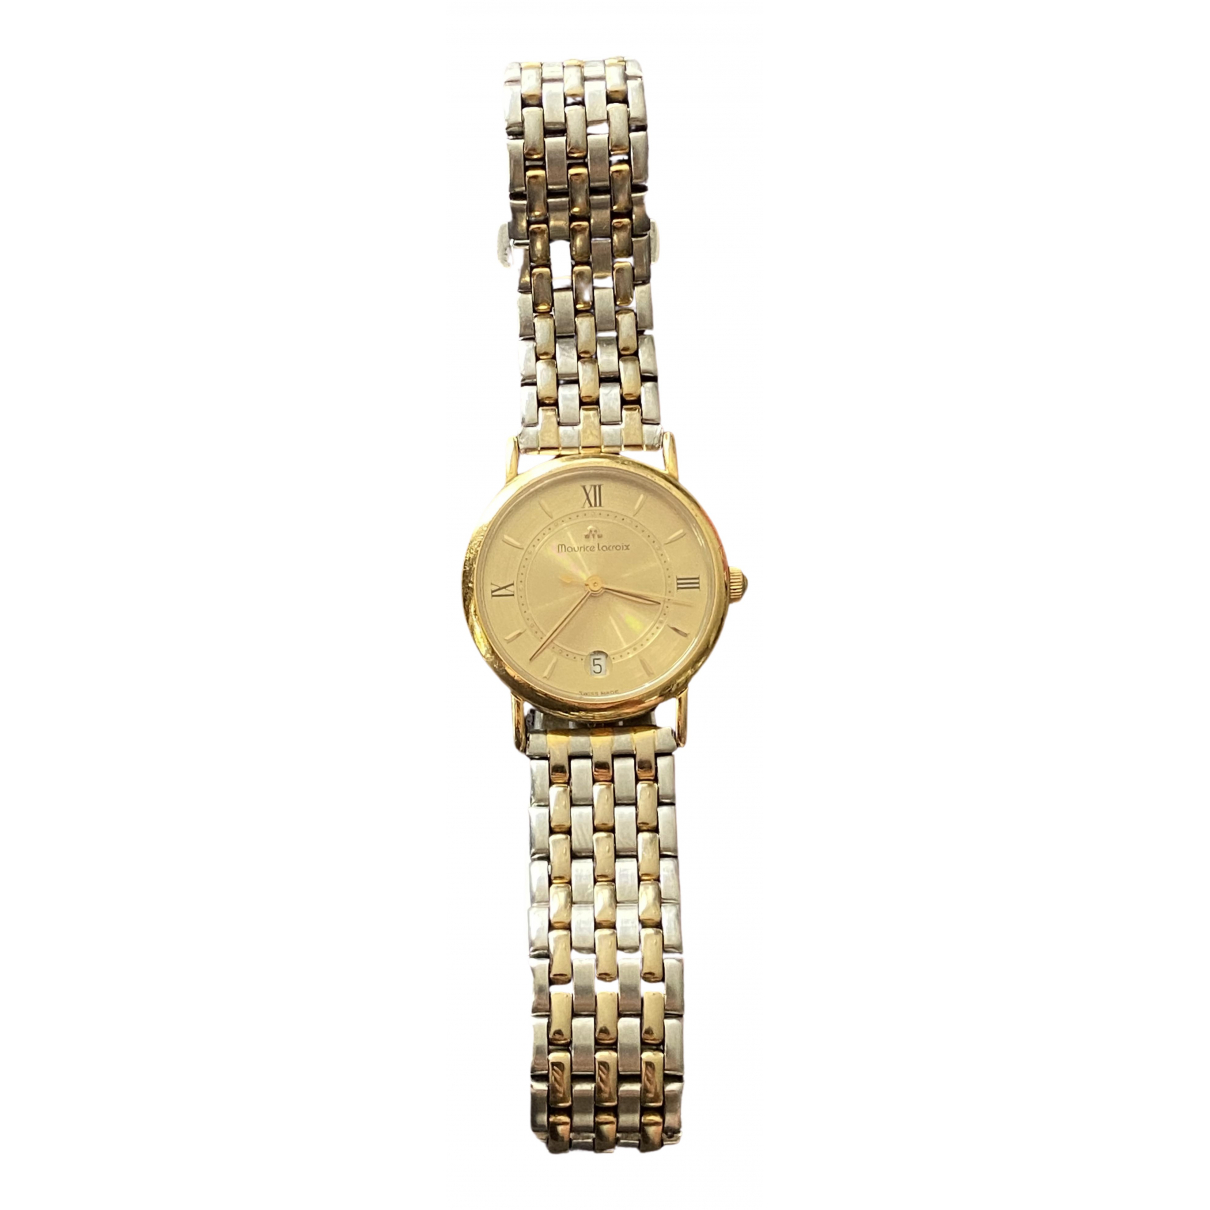 Maurice Lacroix \N Gold Gold plated watch for Women \N